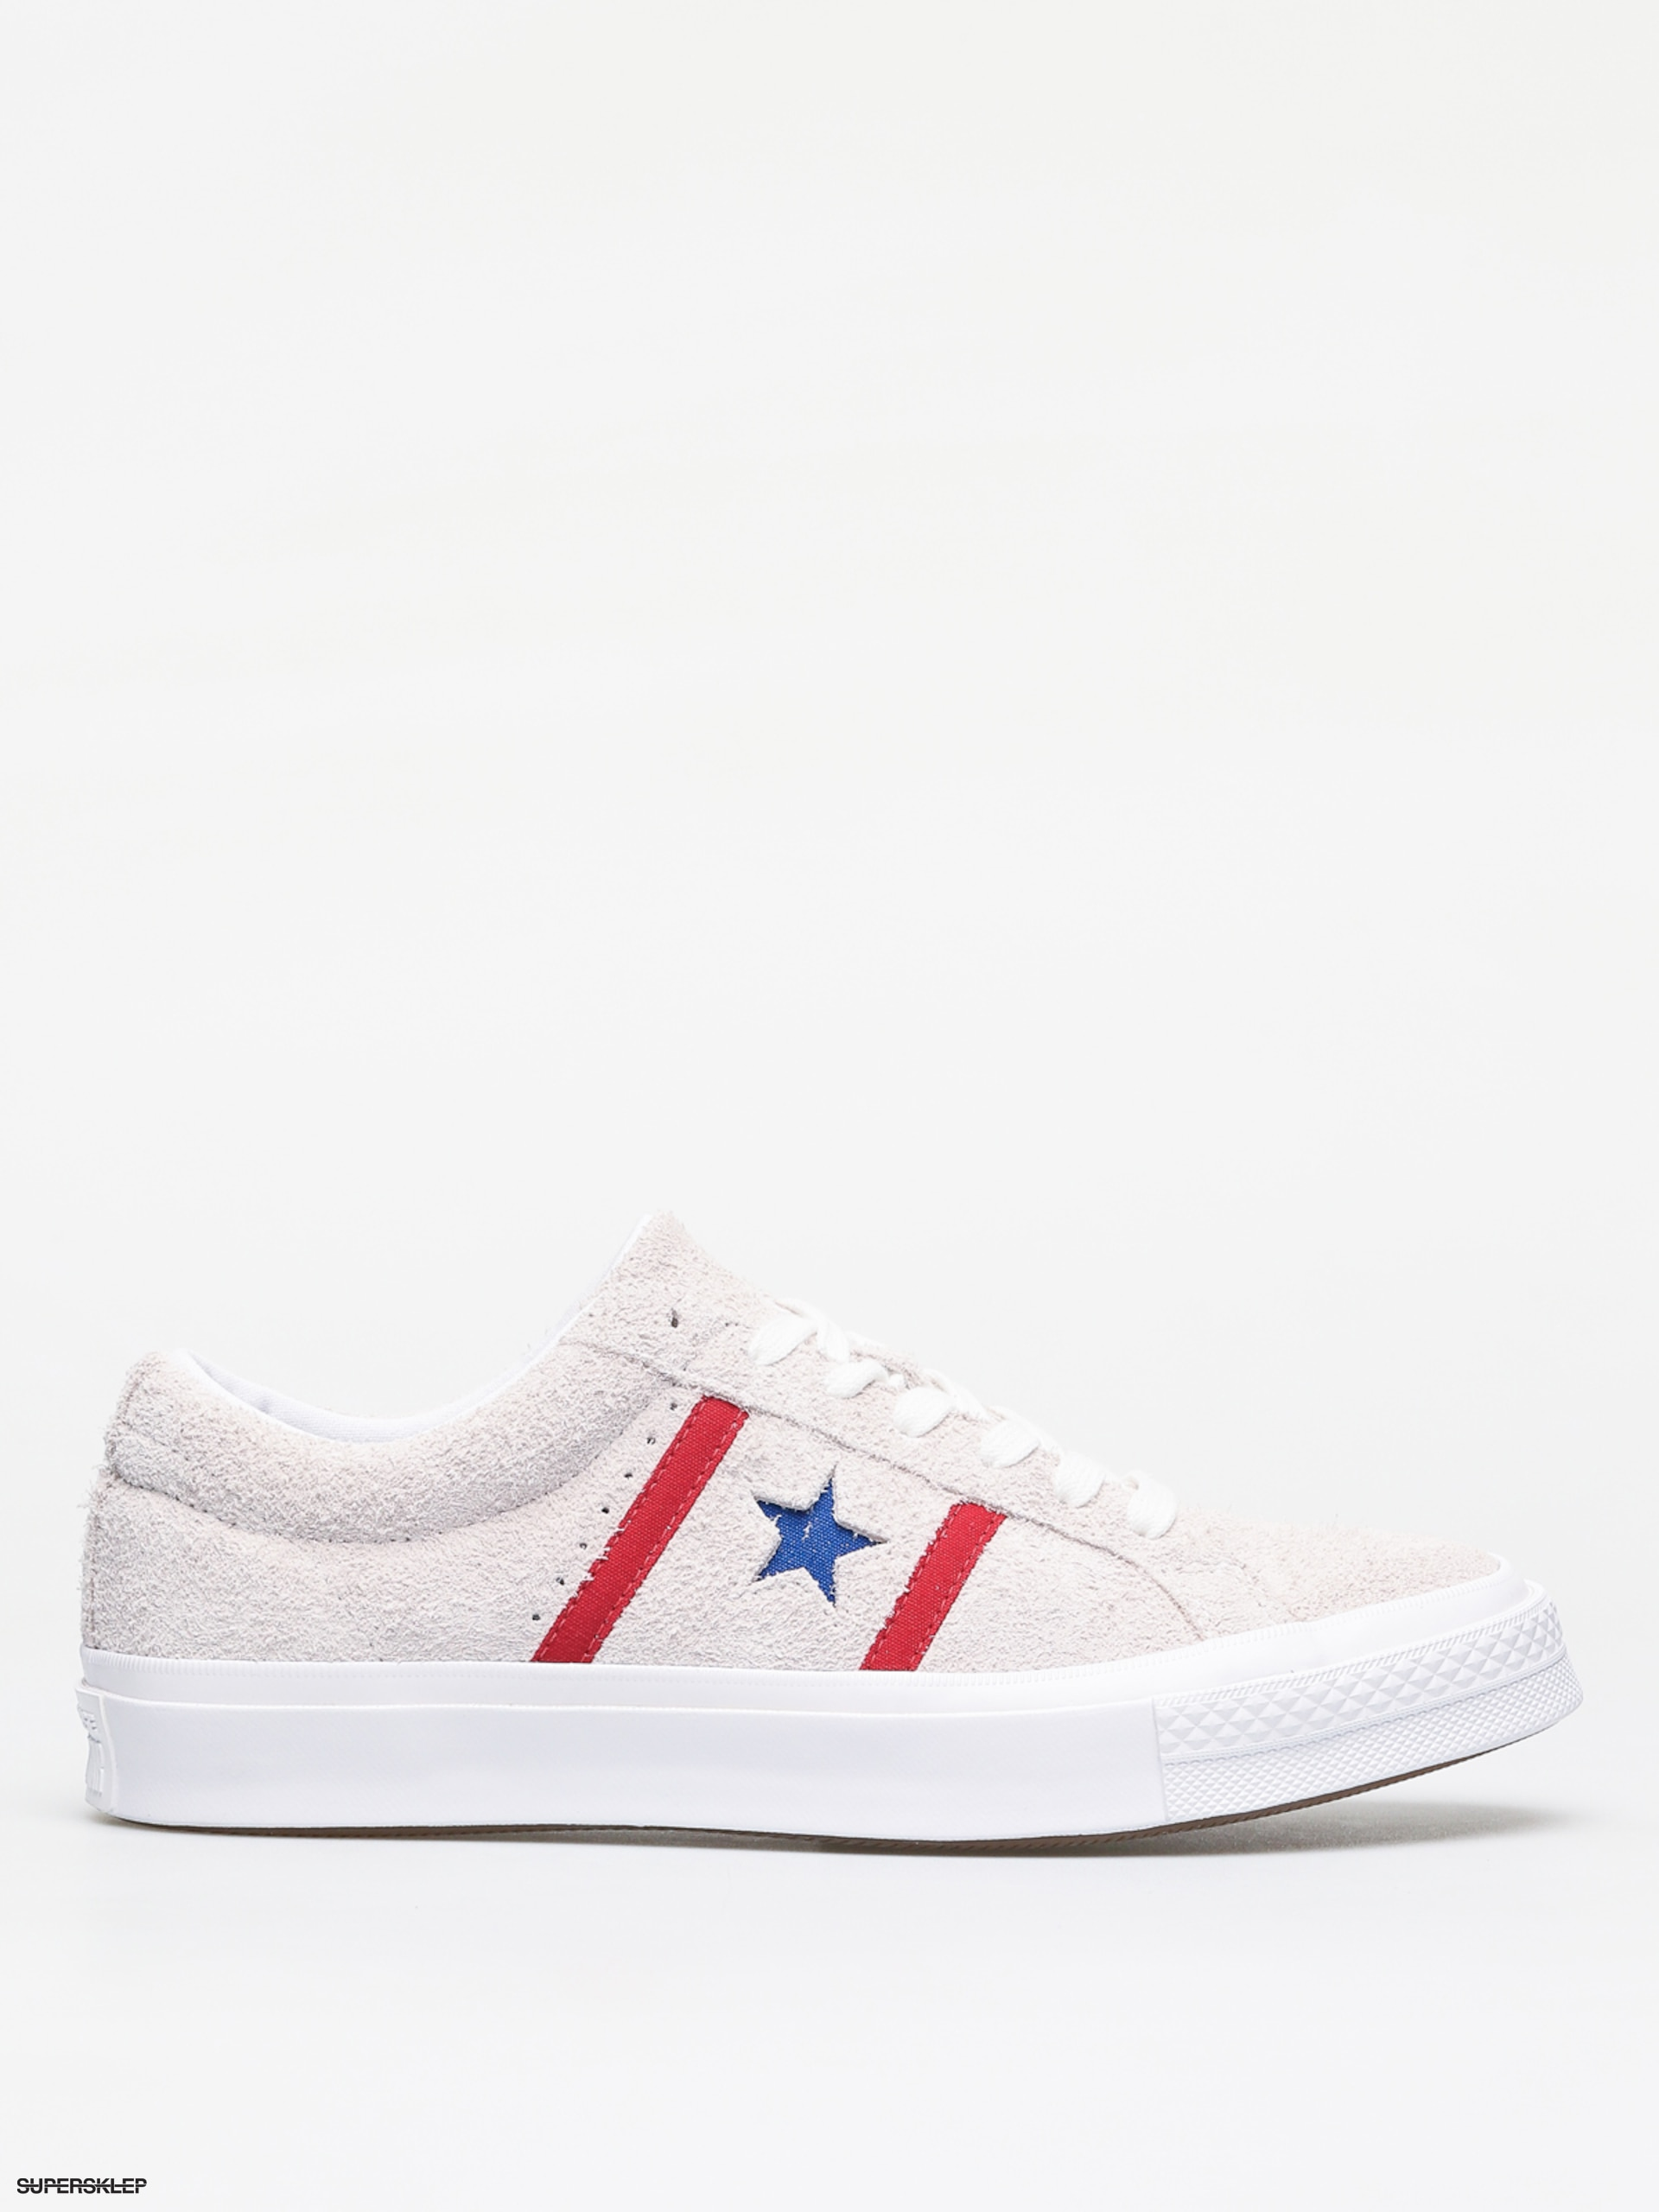 6e357f62307e4 Buty Converse One Star Academy Ox (white/enamel red/blue)